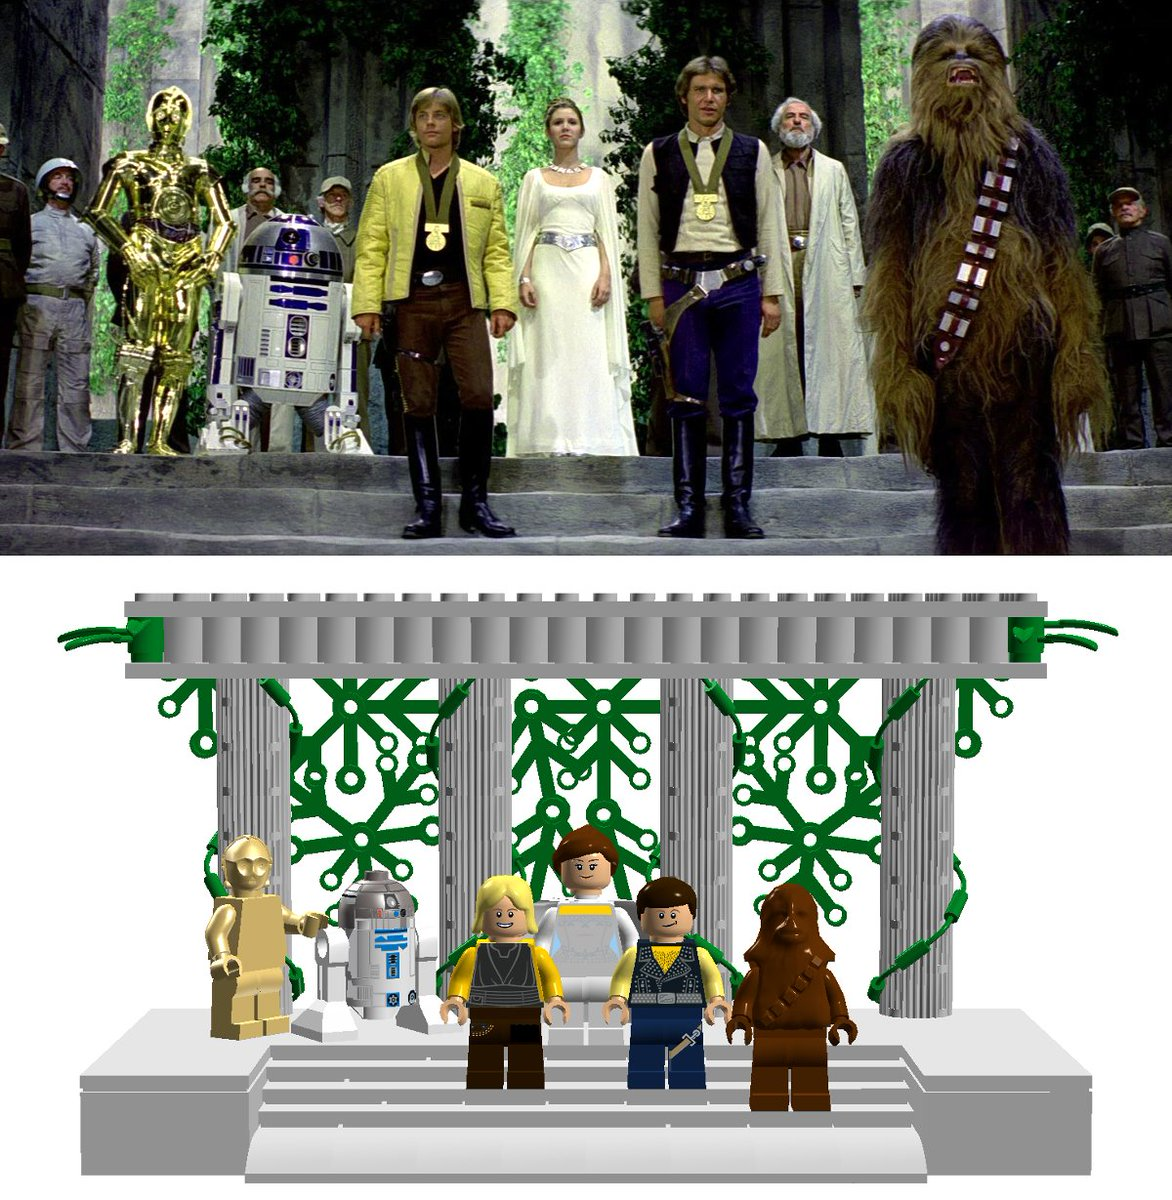 PLEASE VOTE for and RETWEET mach81&#39;s project on @LEGOIdeas!  https:// ideas.lego.com/projects/16596 4?cmp=IdeasProjectSocialShare &nbsp; …  #lego #hansolo #princessleia #winterlinebricks<br>http://pic.twitter.com/hMo4ijdt4I